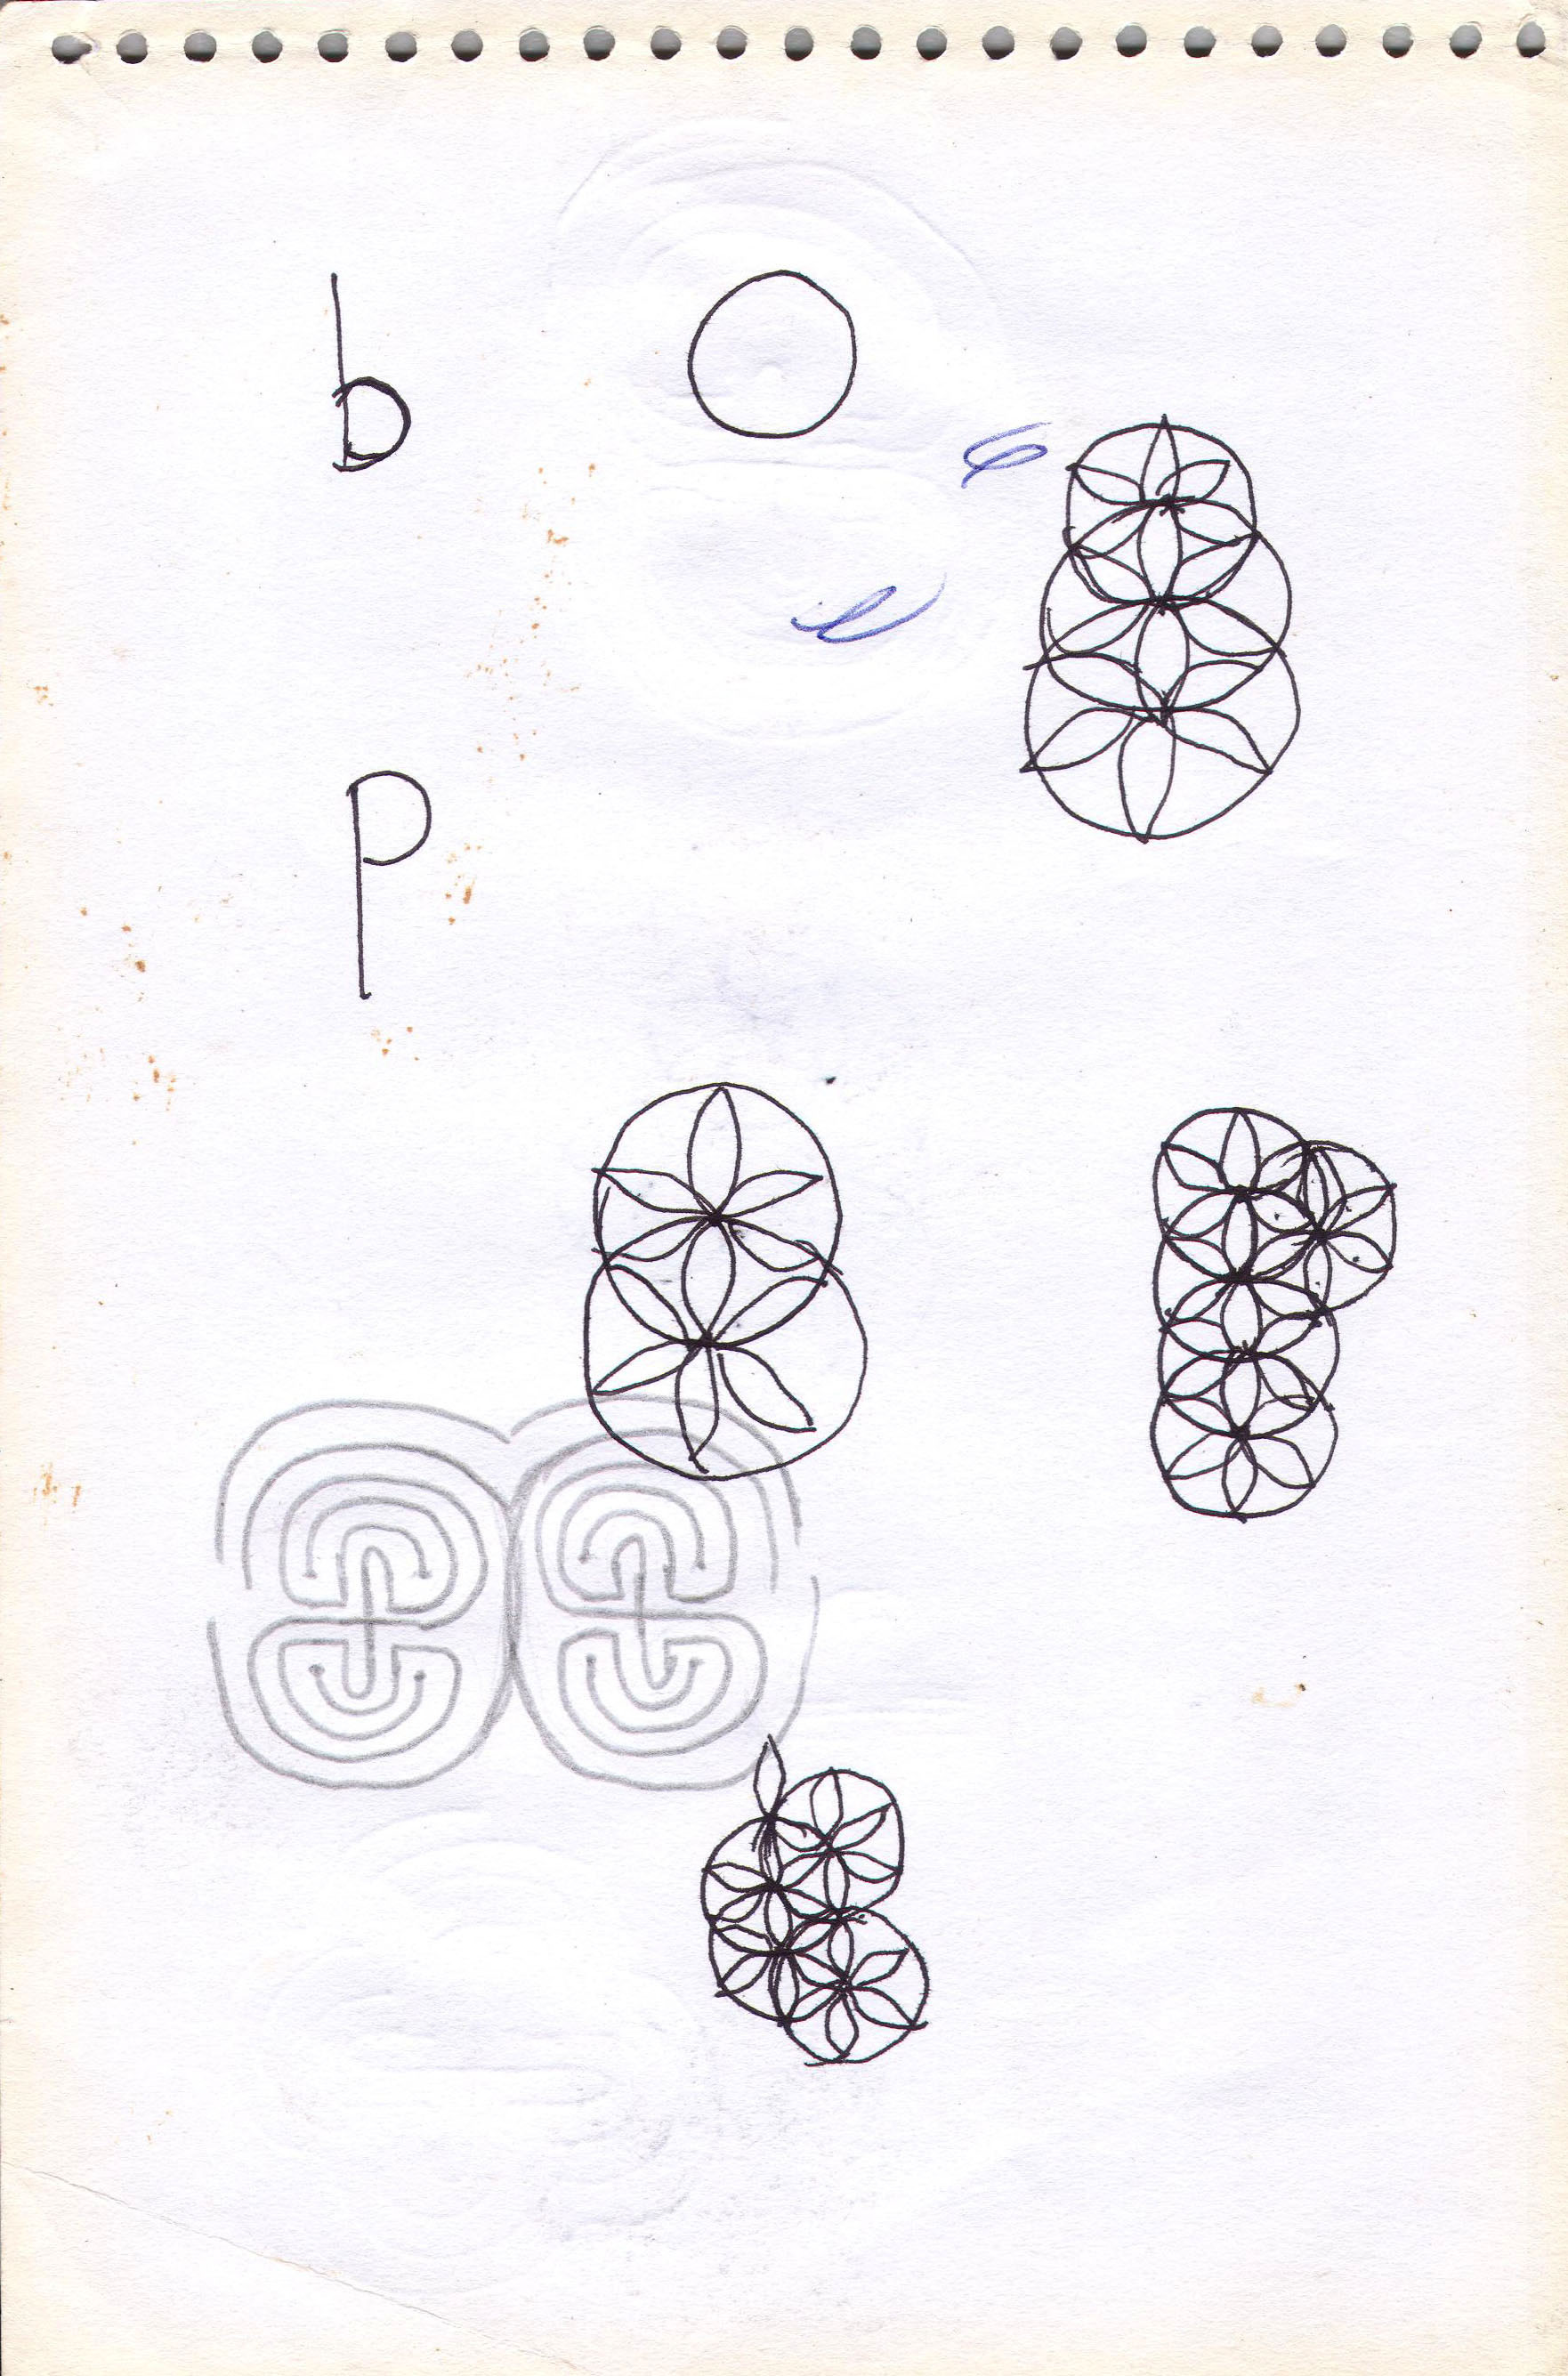 Sketches from the source by a Philippine shaman Bong Delatorre 37